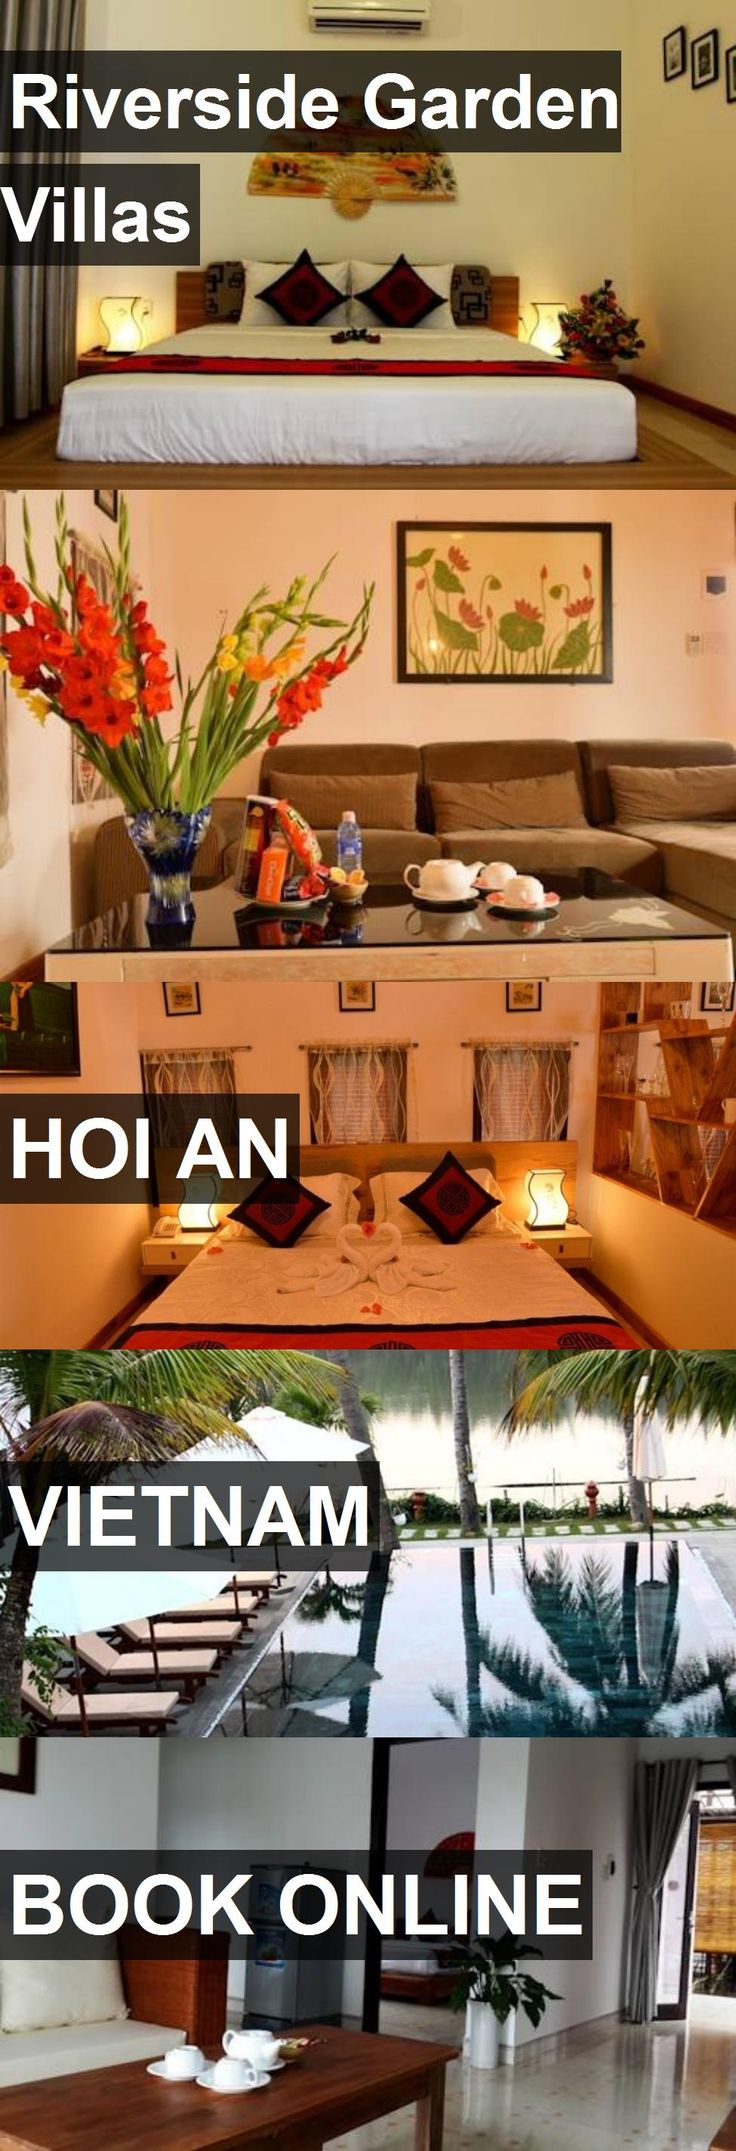 Hotel Riverside Garden Villas in Hoi An, Vietnam. For more information, photos, reviews and best prices please follow the link. #Vietnam #HoiAn #travel #vacation #hotel